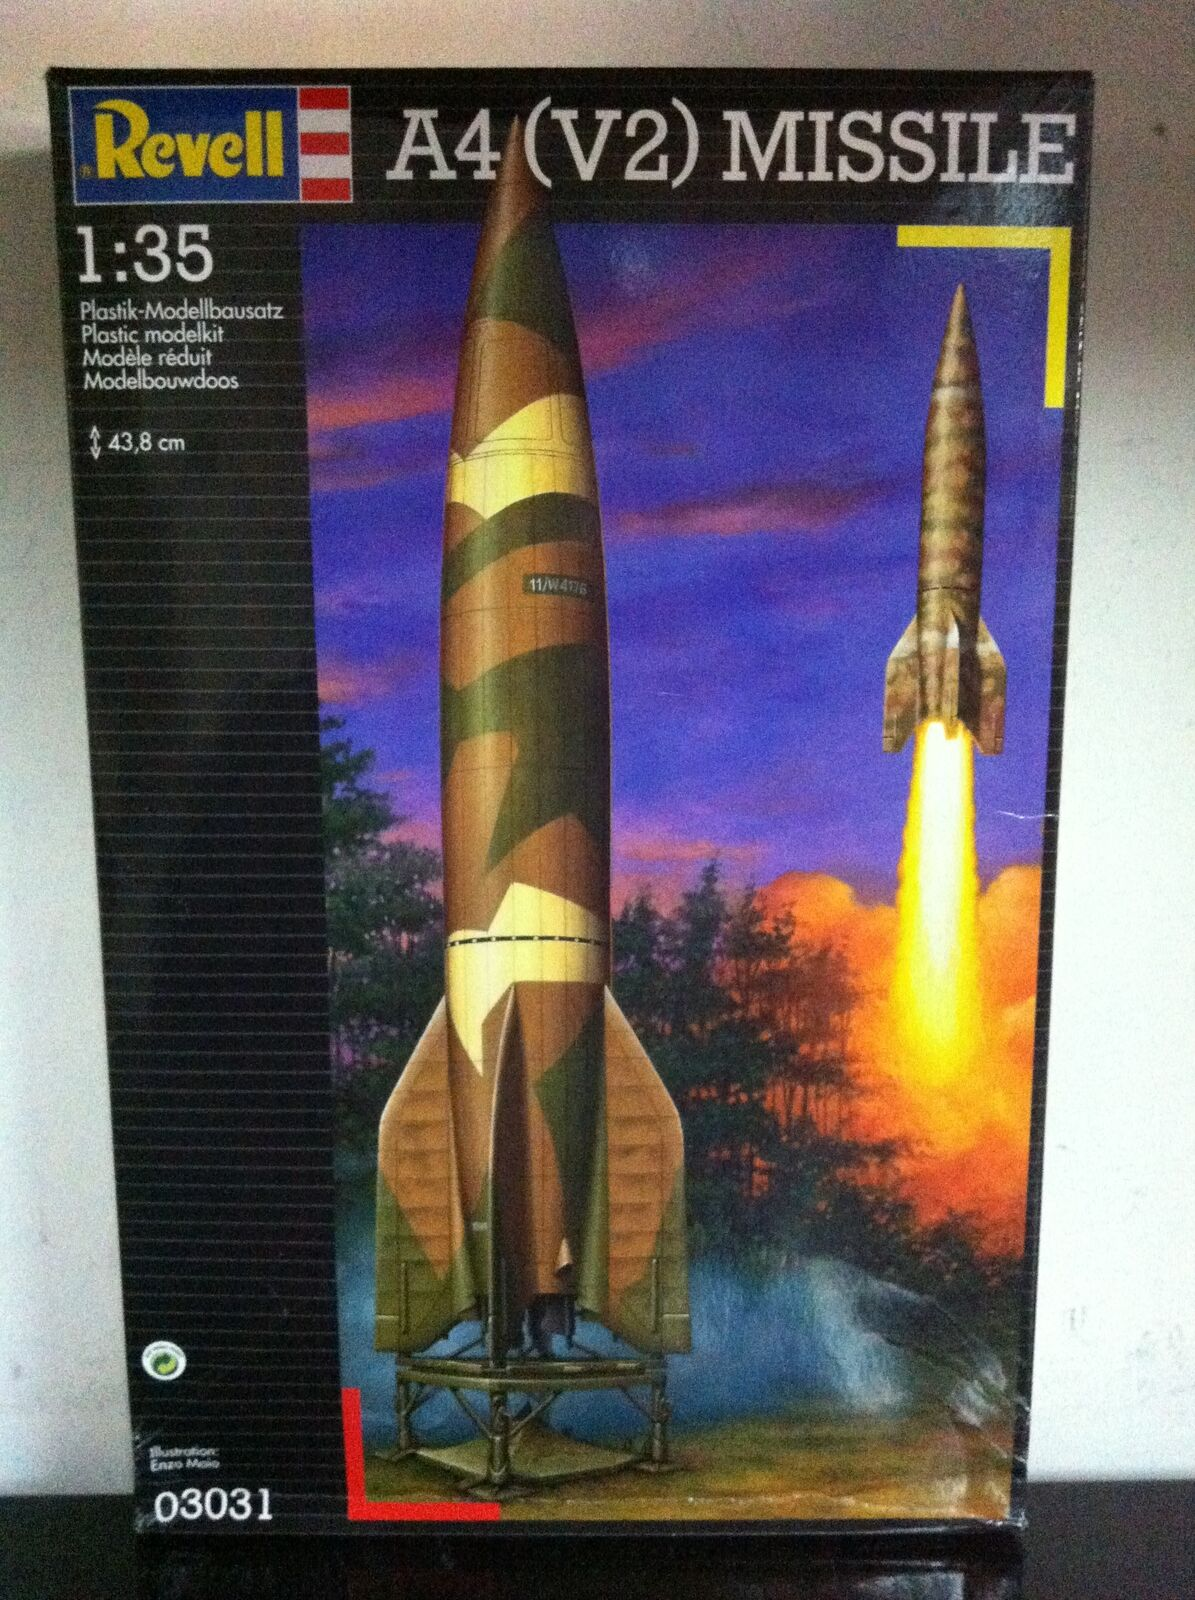 Revell model  fitting kit 1 35 03031 a4 (v2) Missile 3031 MIB, 1998  magasin d'usine de sortie